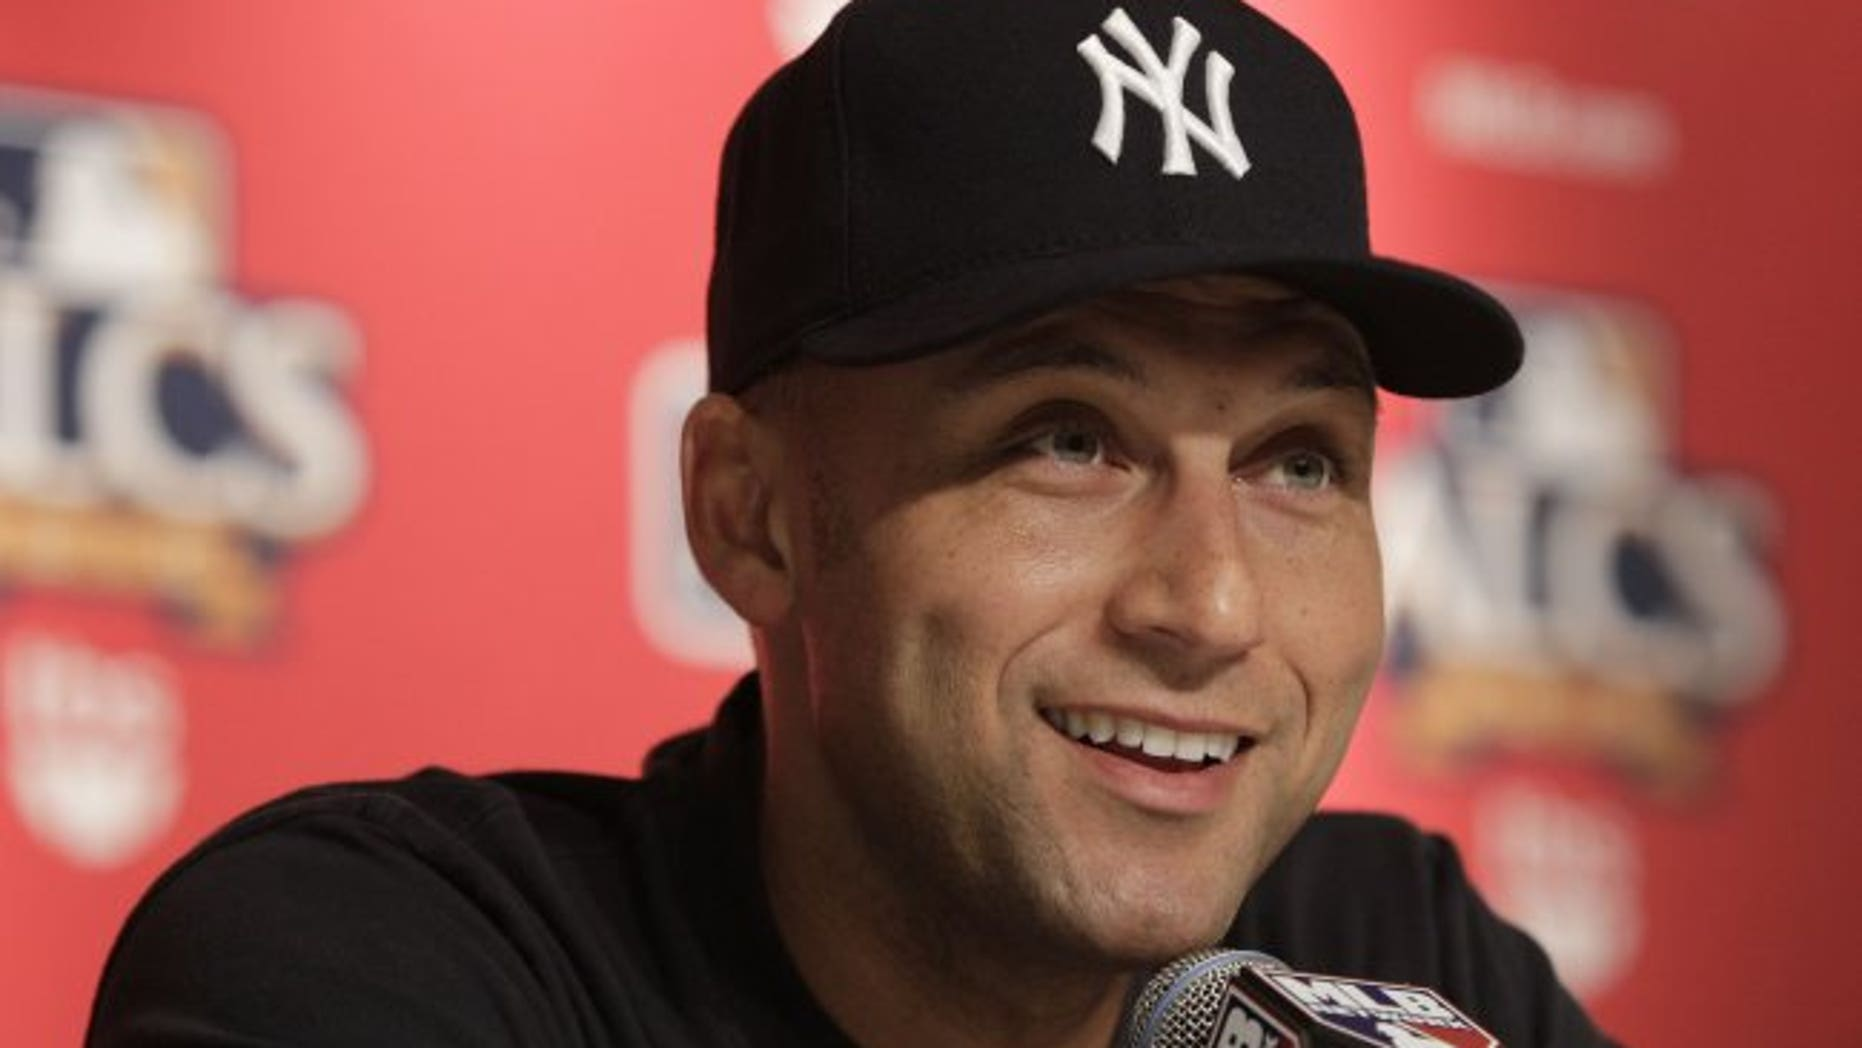 Derek Jeter is looking to open a Players' Tribune concept restaurant.